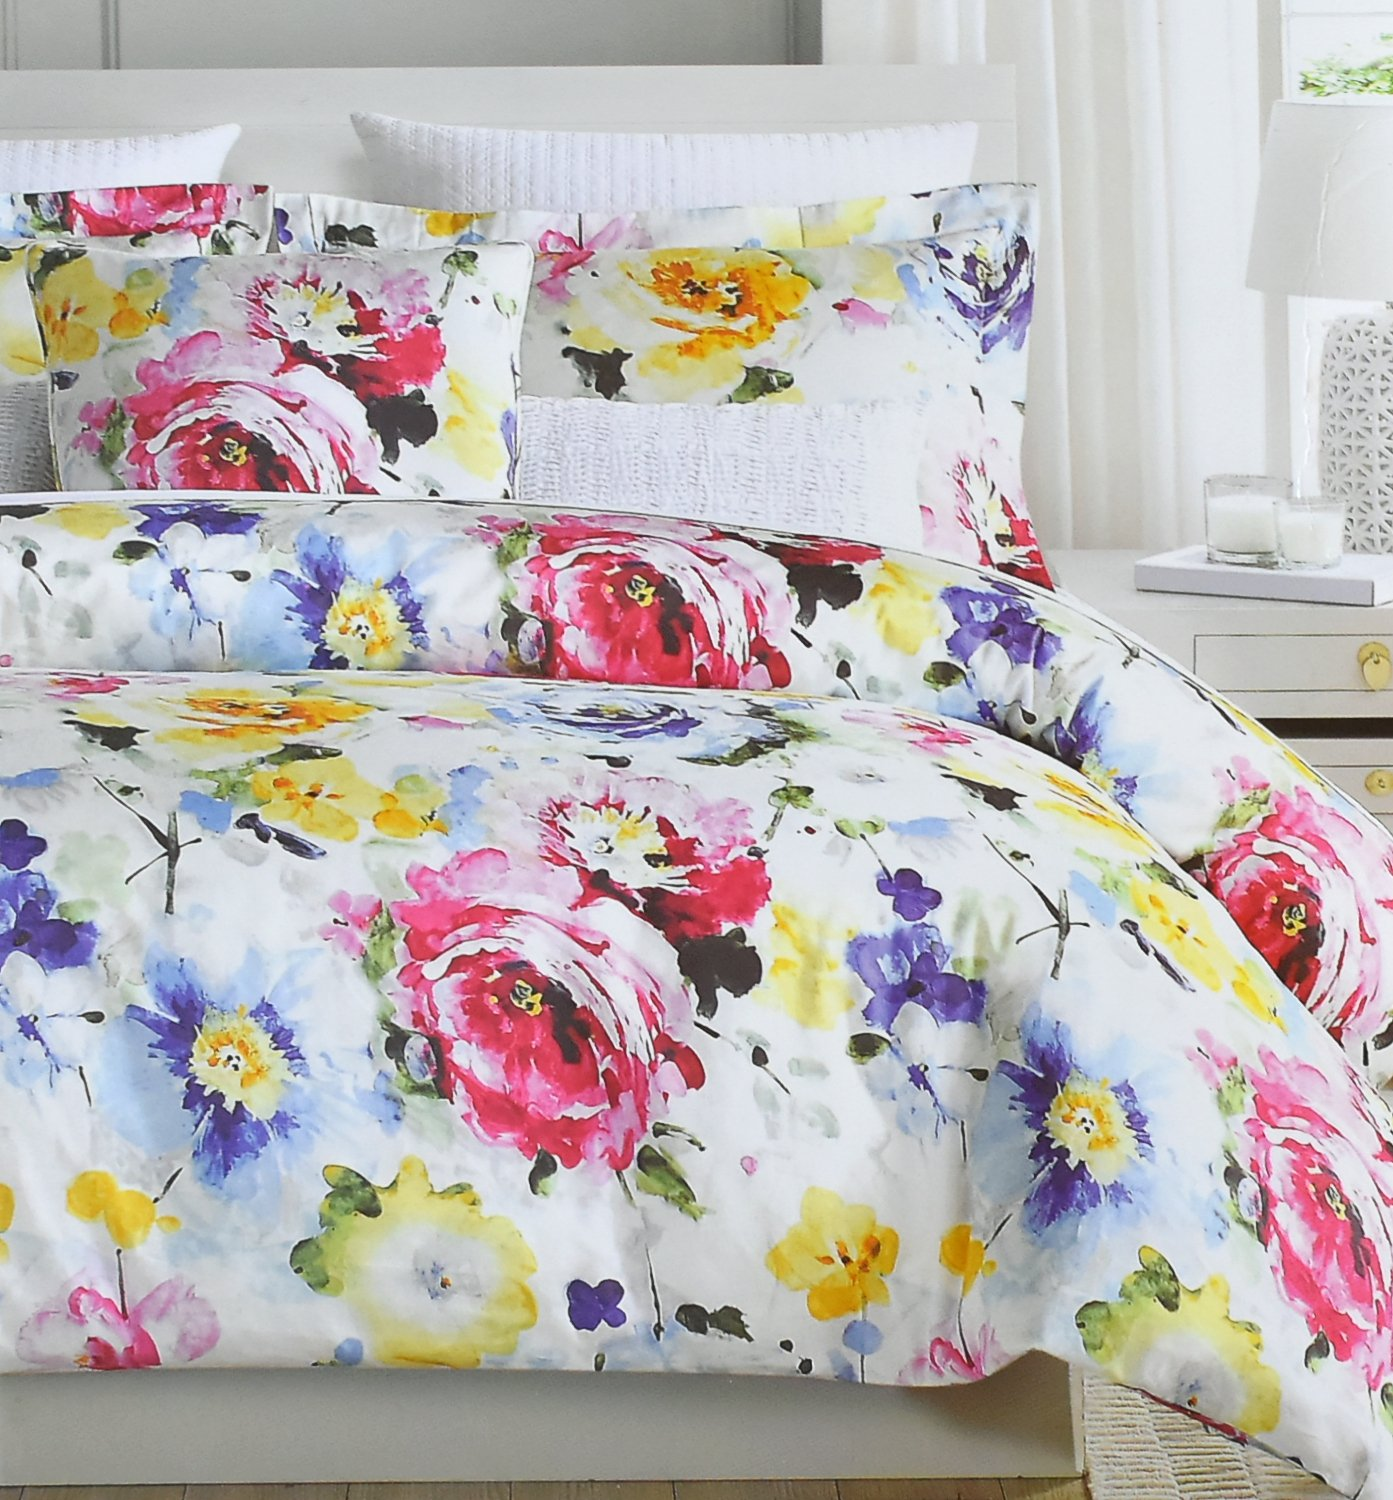 Vintage Botanical Wild Flower Print Duvet Quilt Cover 100-percent Cotton Bedding Set Colorful Floral Branches Drawing of Summer Blossoms (Queen, Summer Bloom)